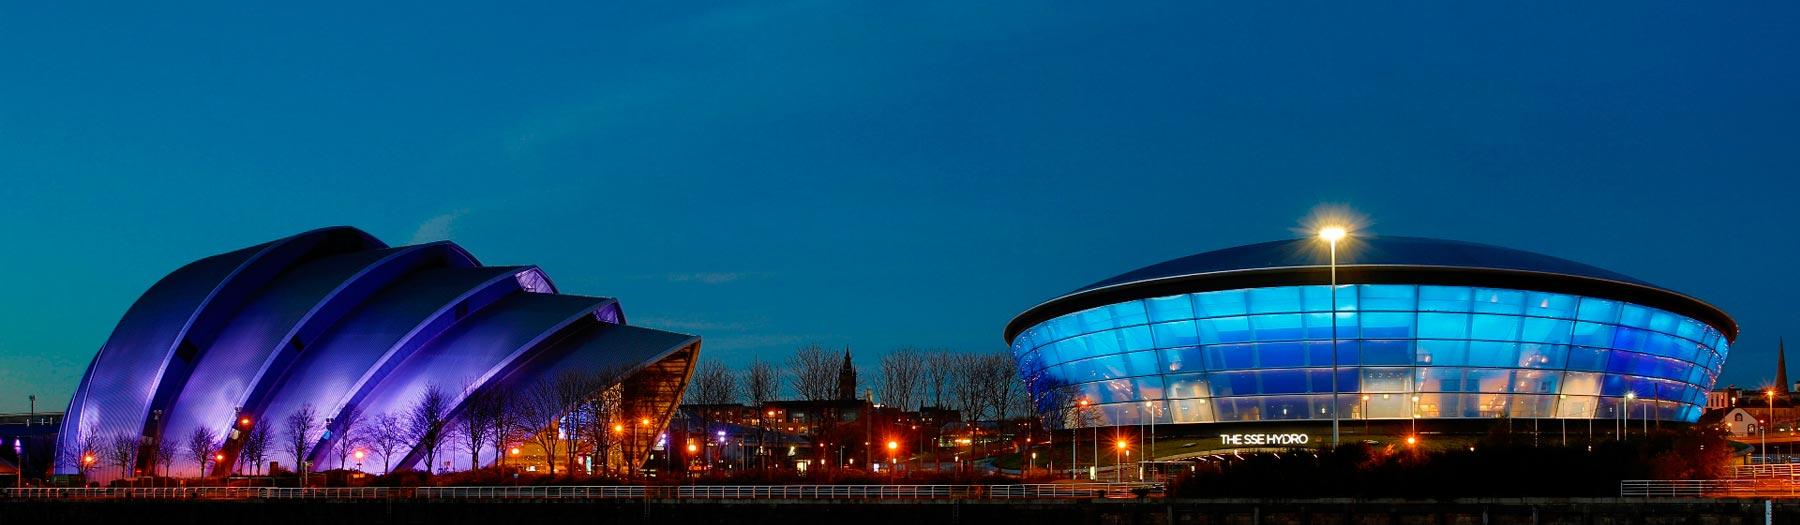 Image: The Armadillo and the SSE Hydro. Credit: Neale Smith.